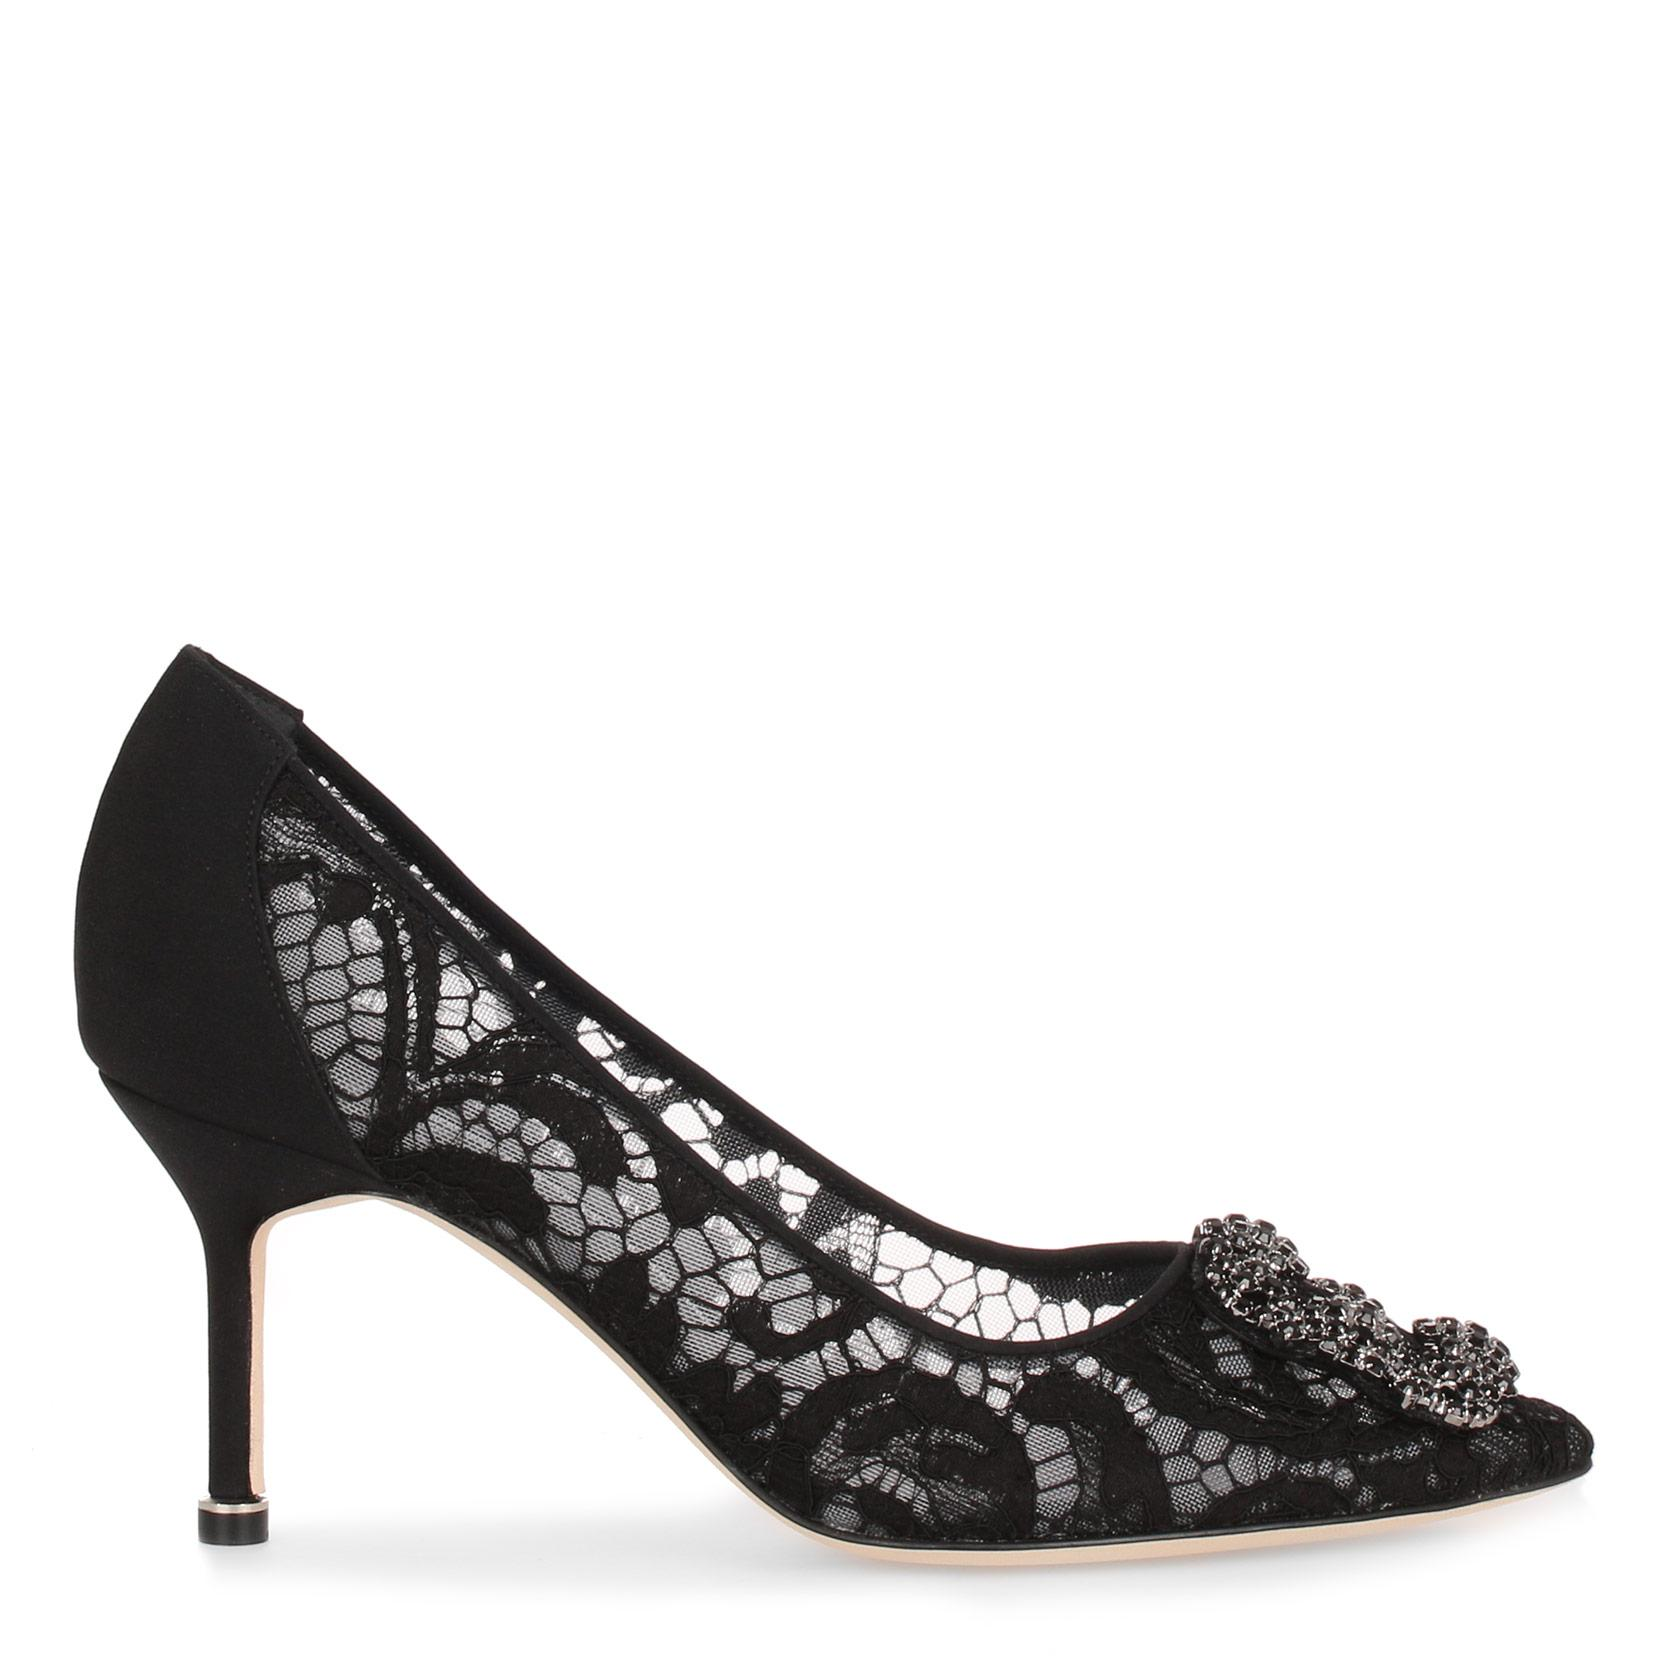 Hangisi 70 black lace pump Manolo Blahnik